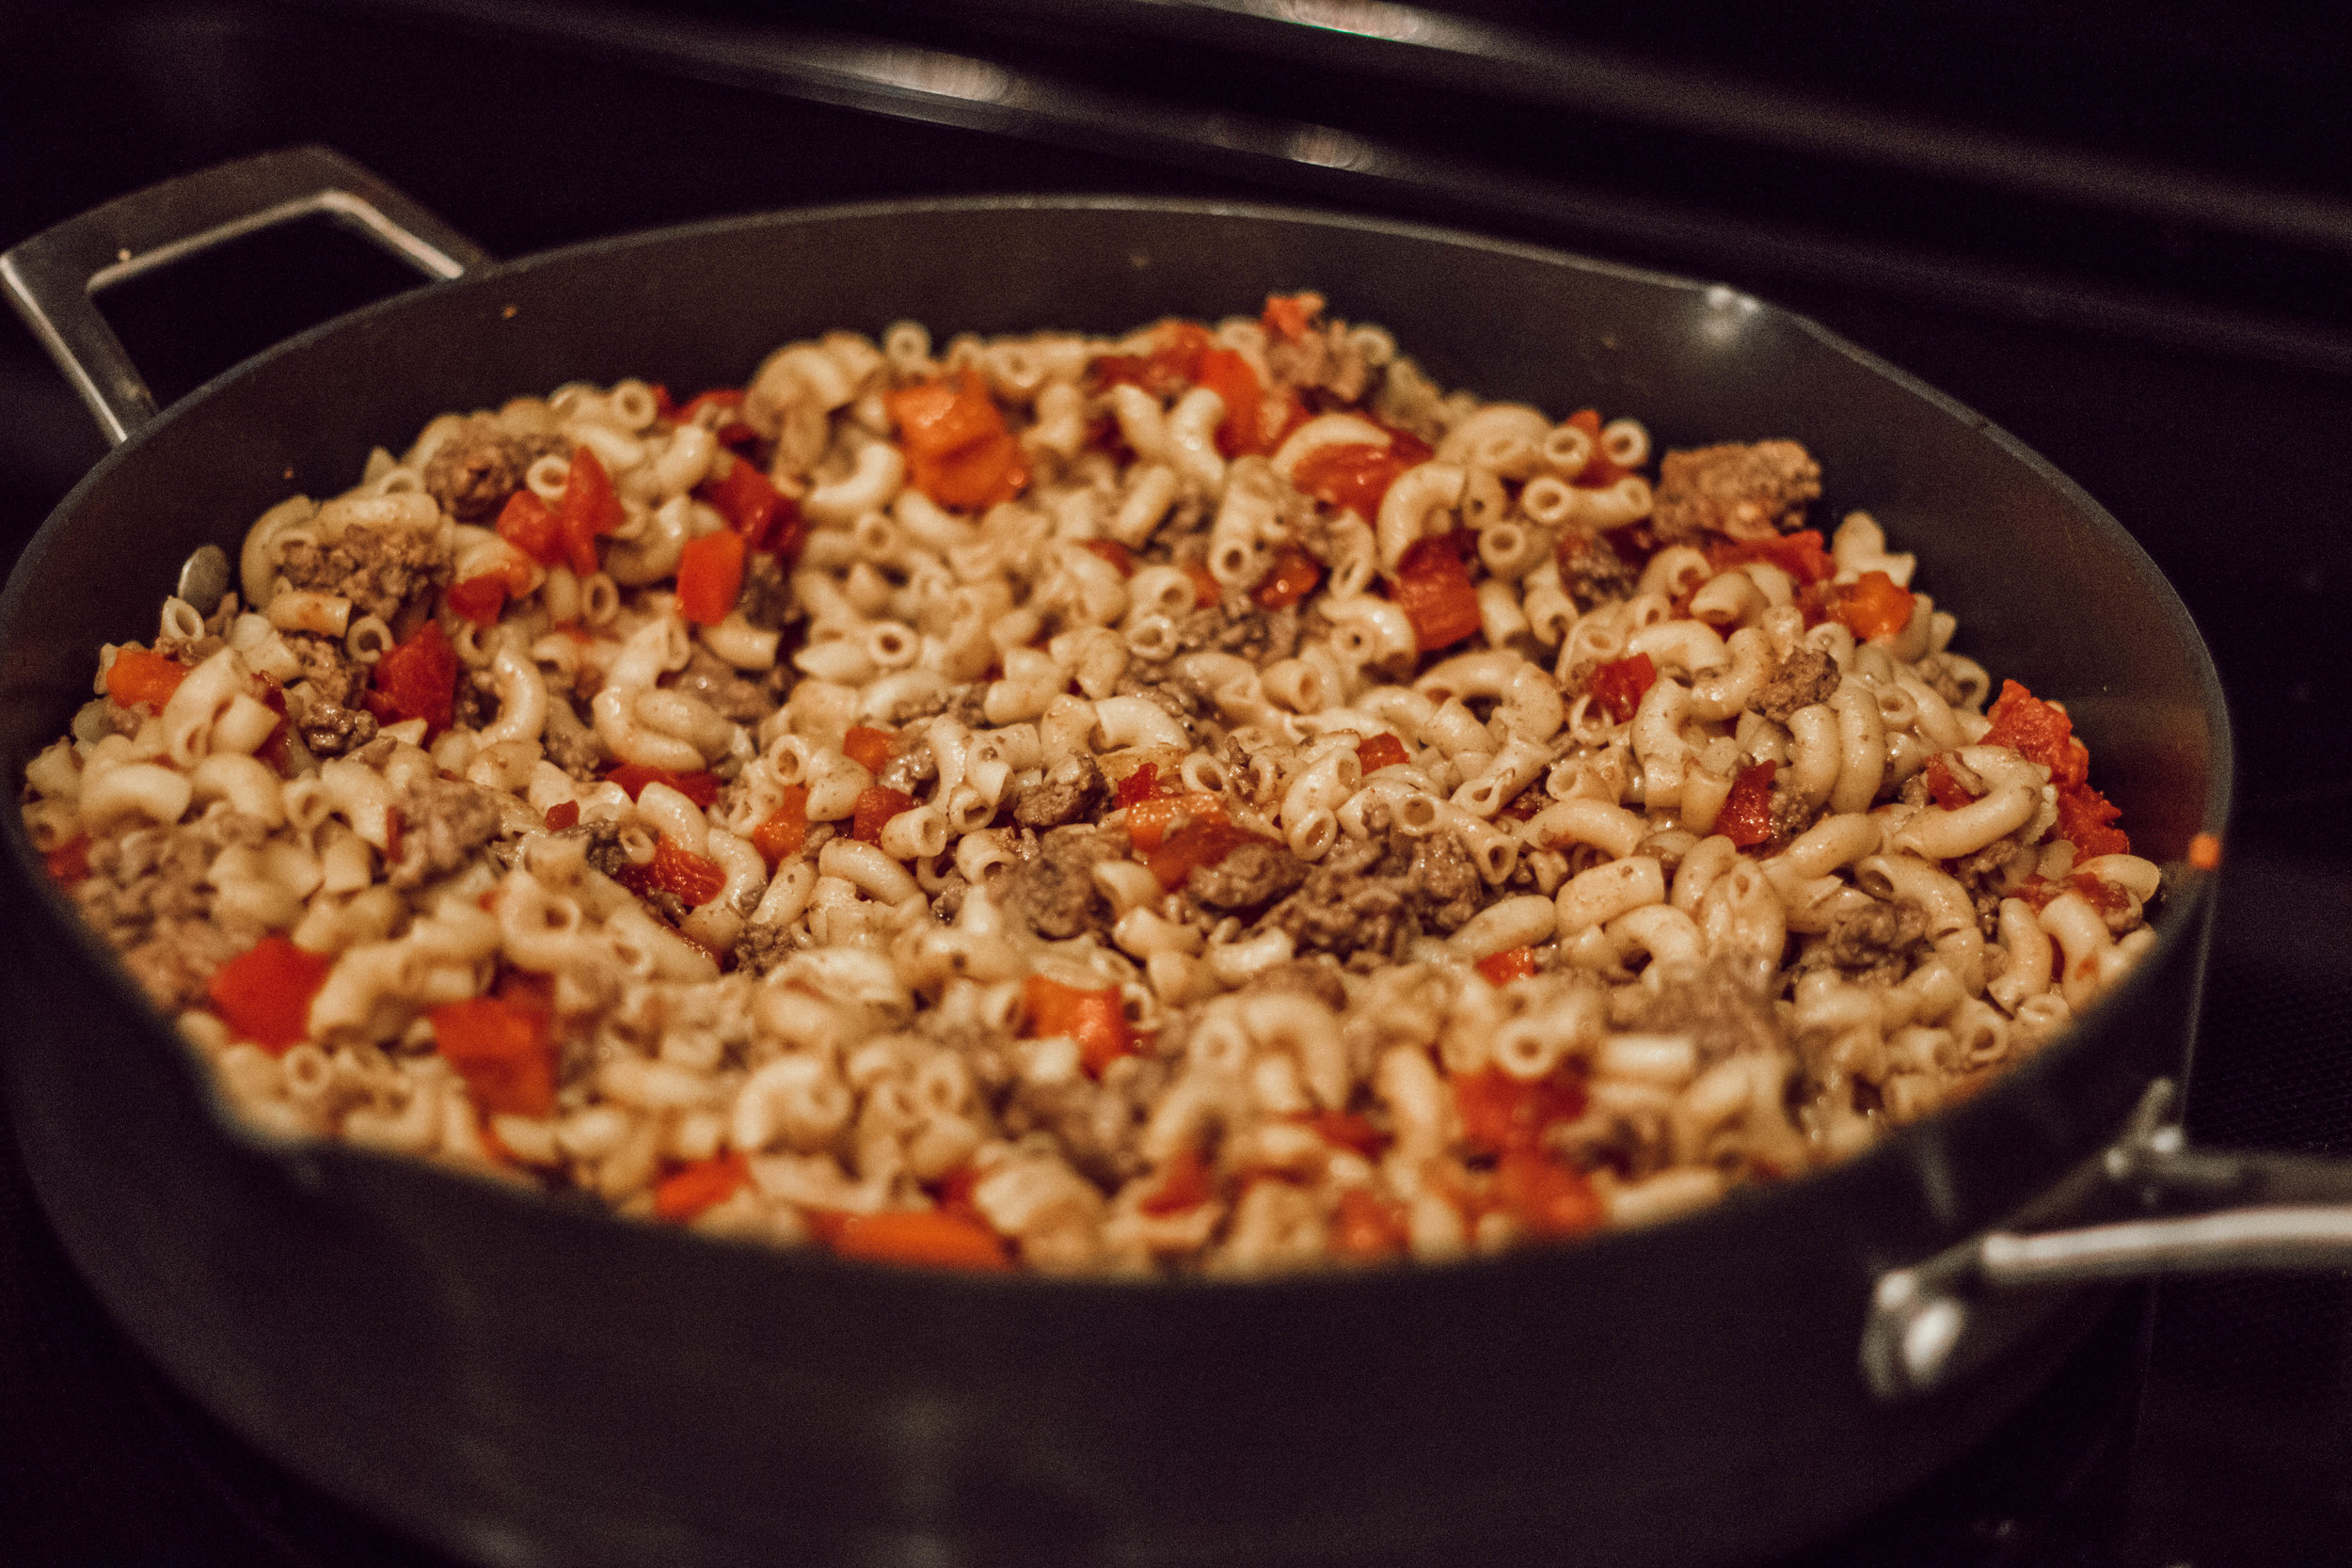 30 Minute Taco Skillet Recipe by popular Indianapolis lifestyle blogger Trendy in Indy